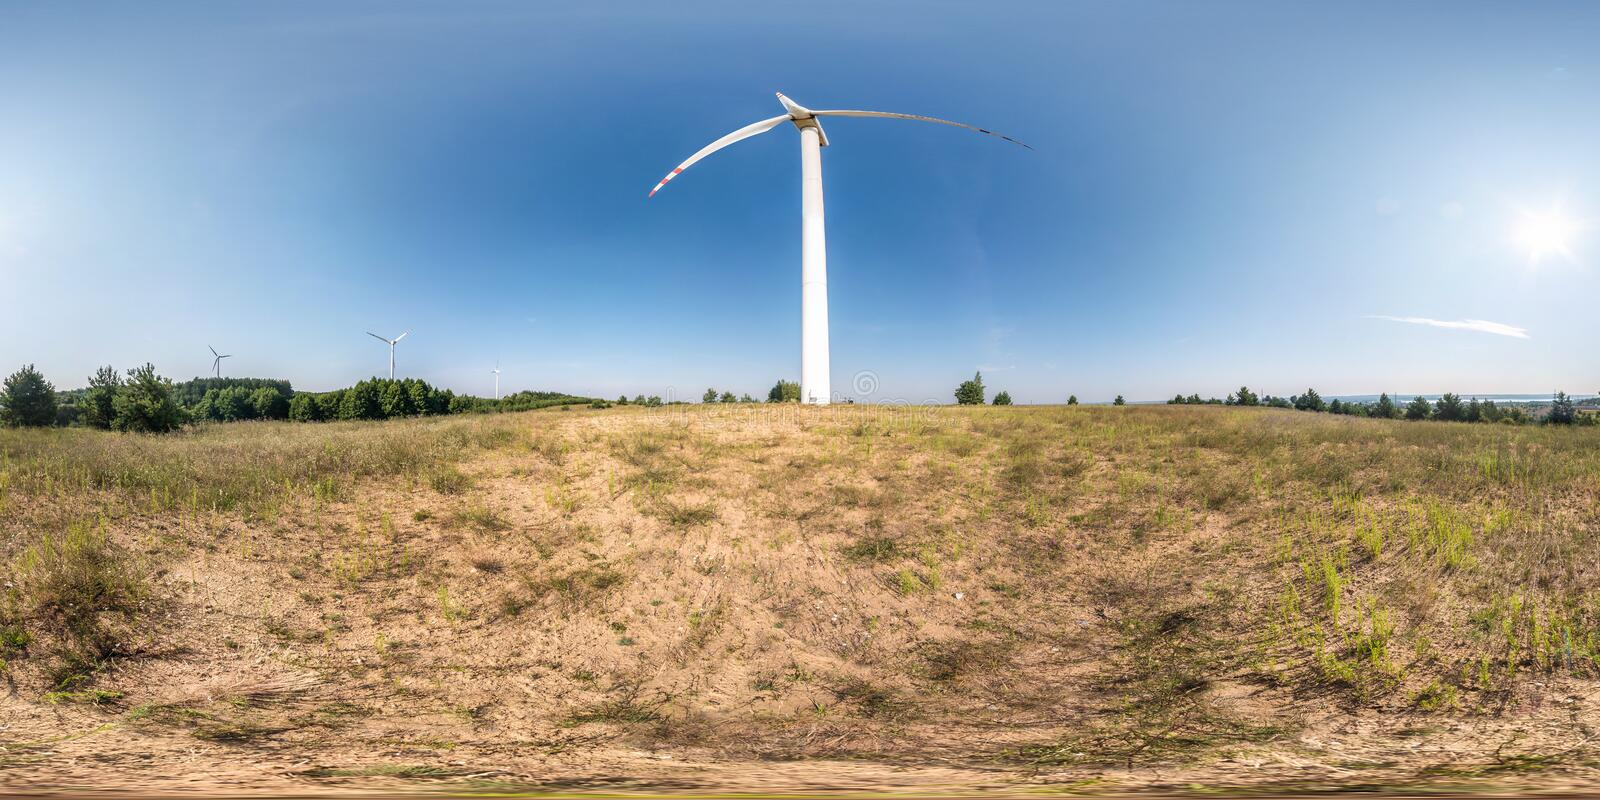 Full seamless spherical hdri panorama 360 degrees angle view near huge windmill propeller in equirectangular projection, VR AR. Virtual reality content. Wind stock photo